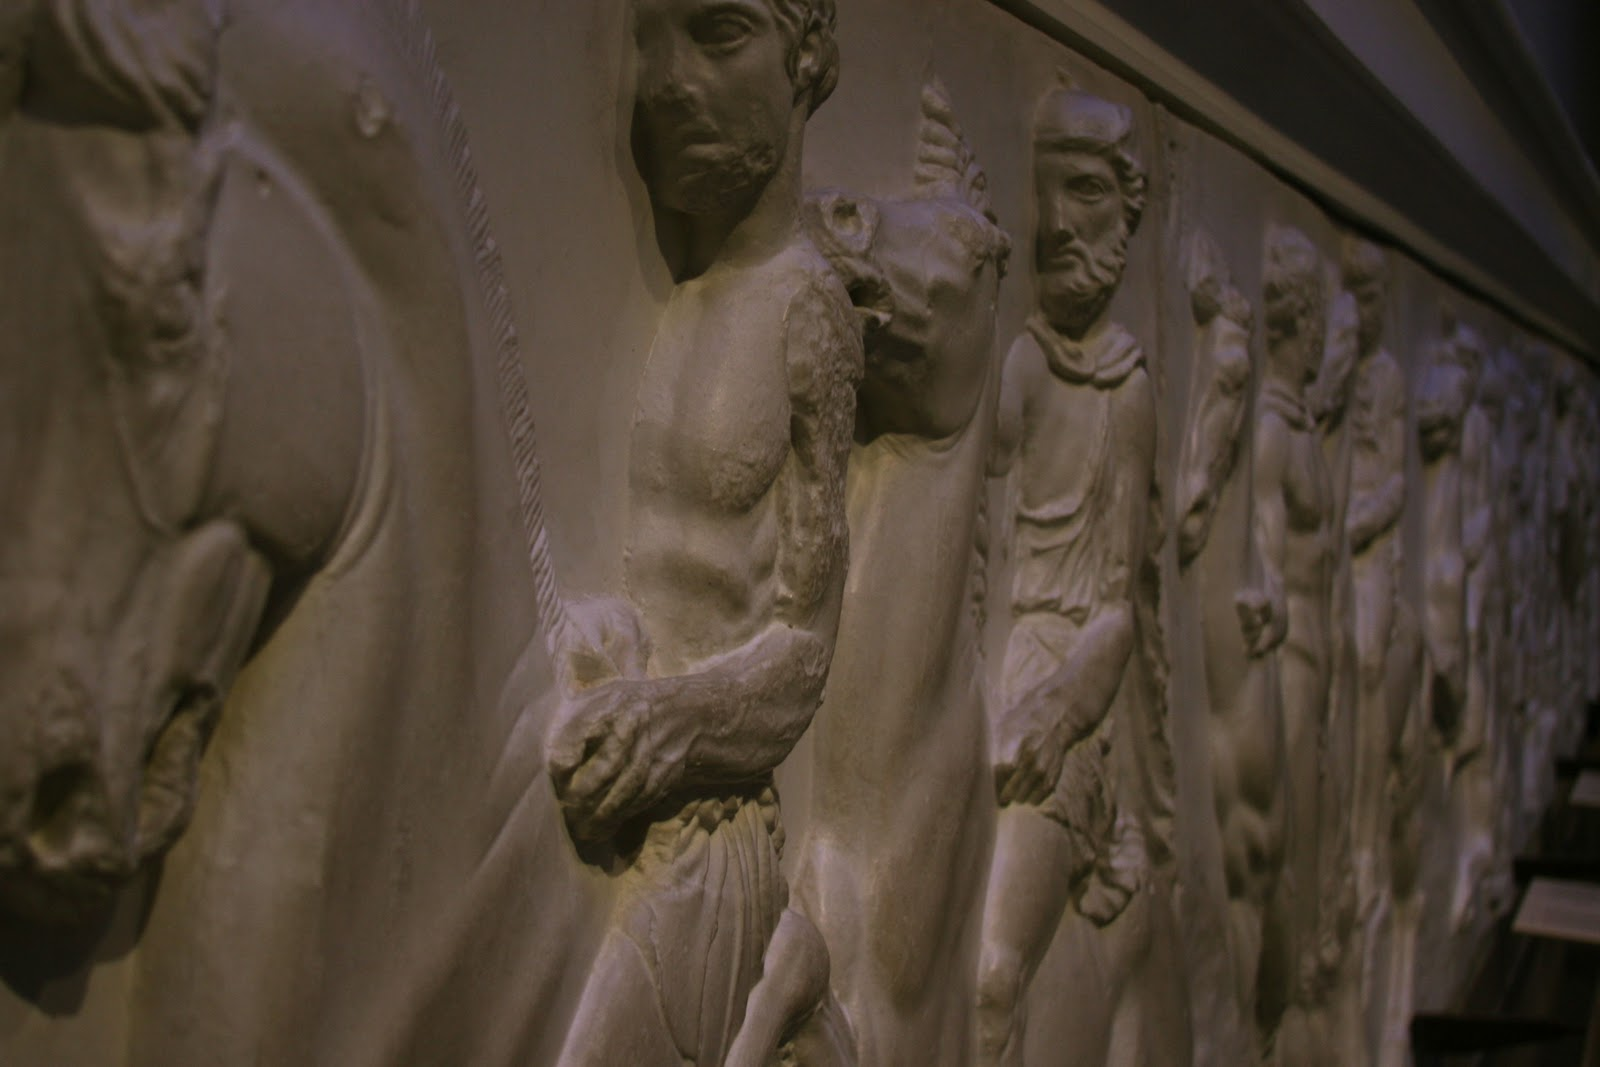 elgin marbles debate essay Enjoy proficient essay elgin debate marbles essays writing and custom writing services provided by professional academic writers 14-7-2015 museums are using.